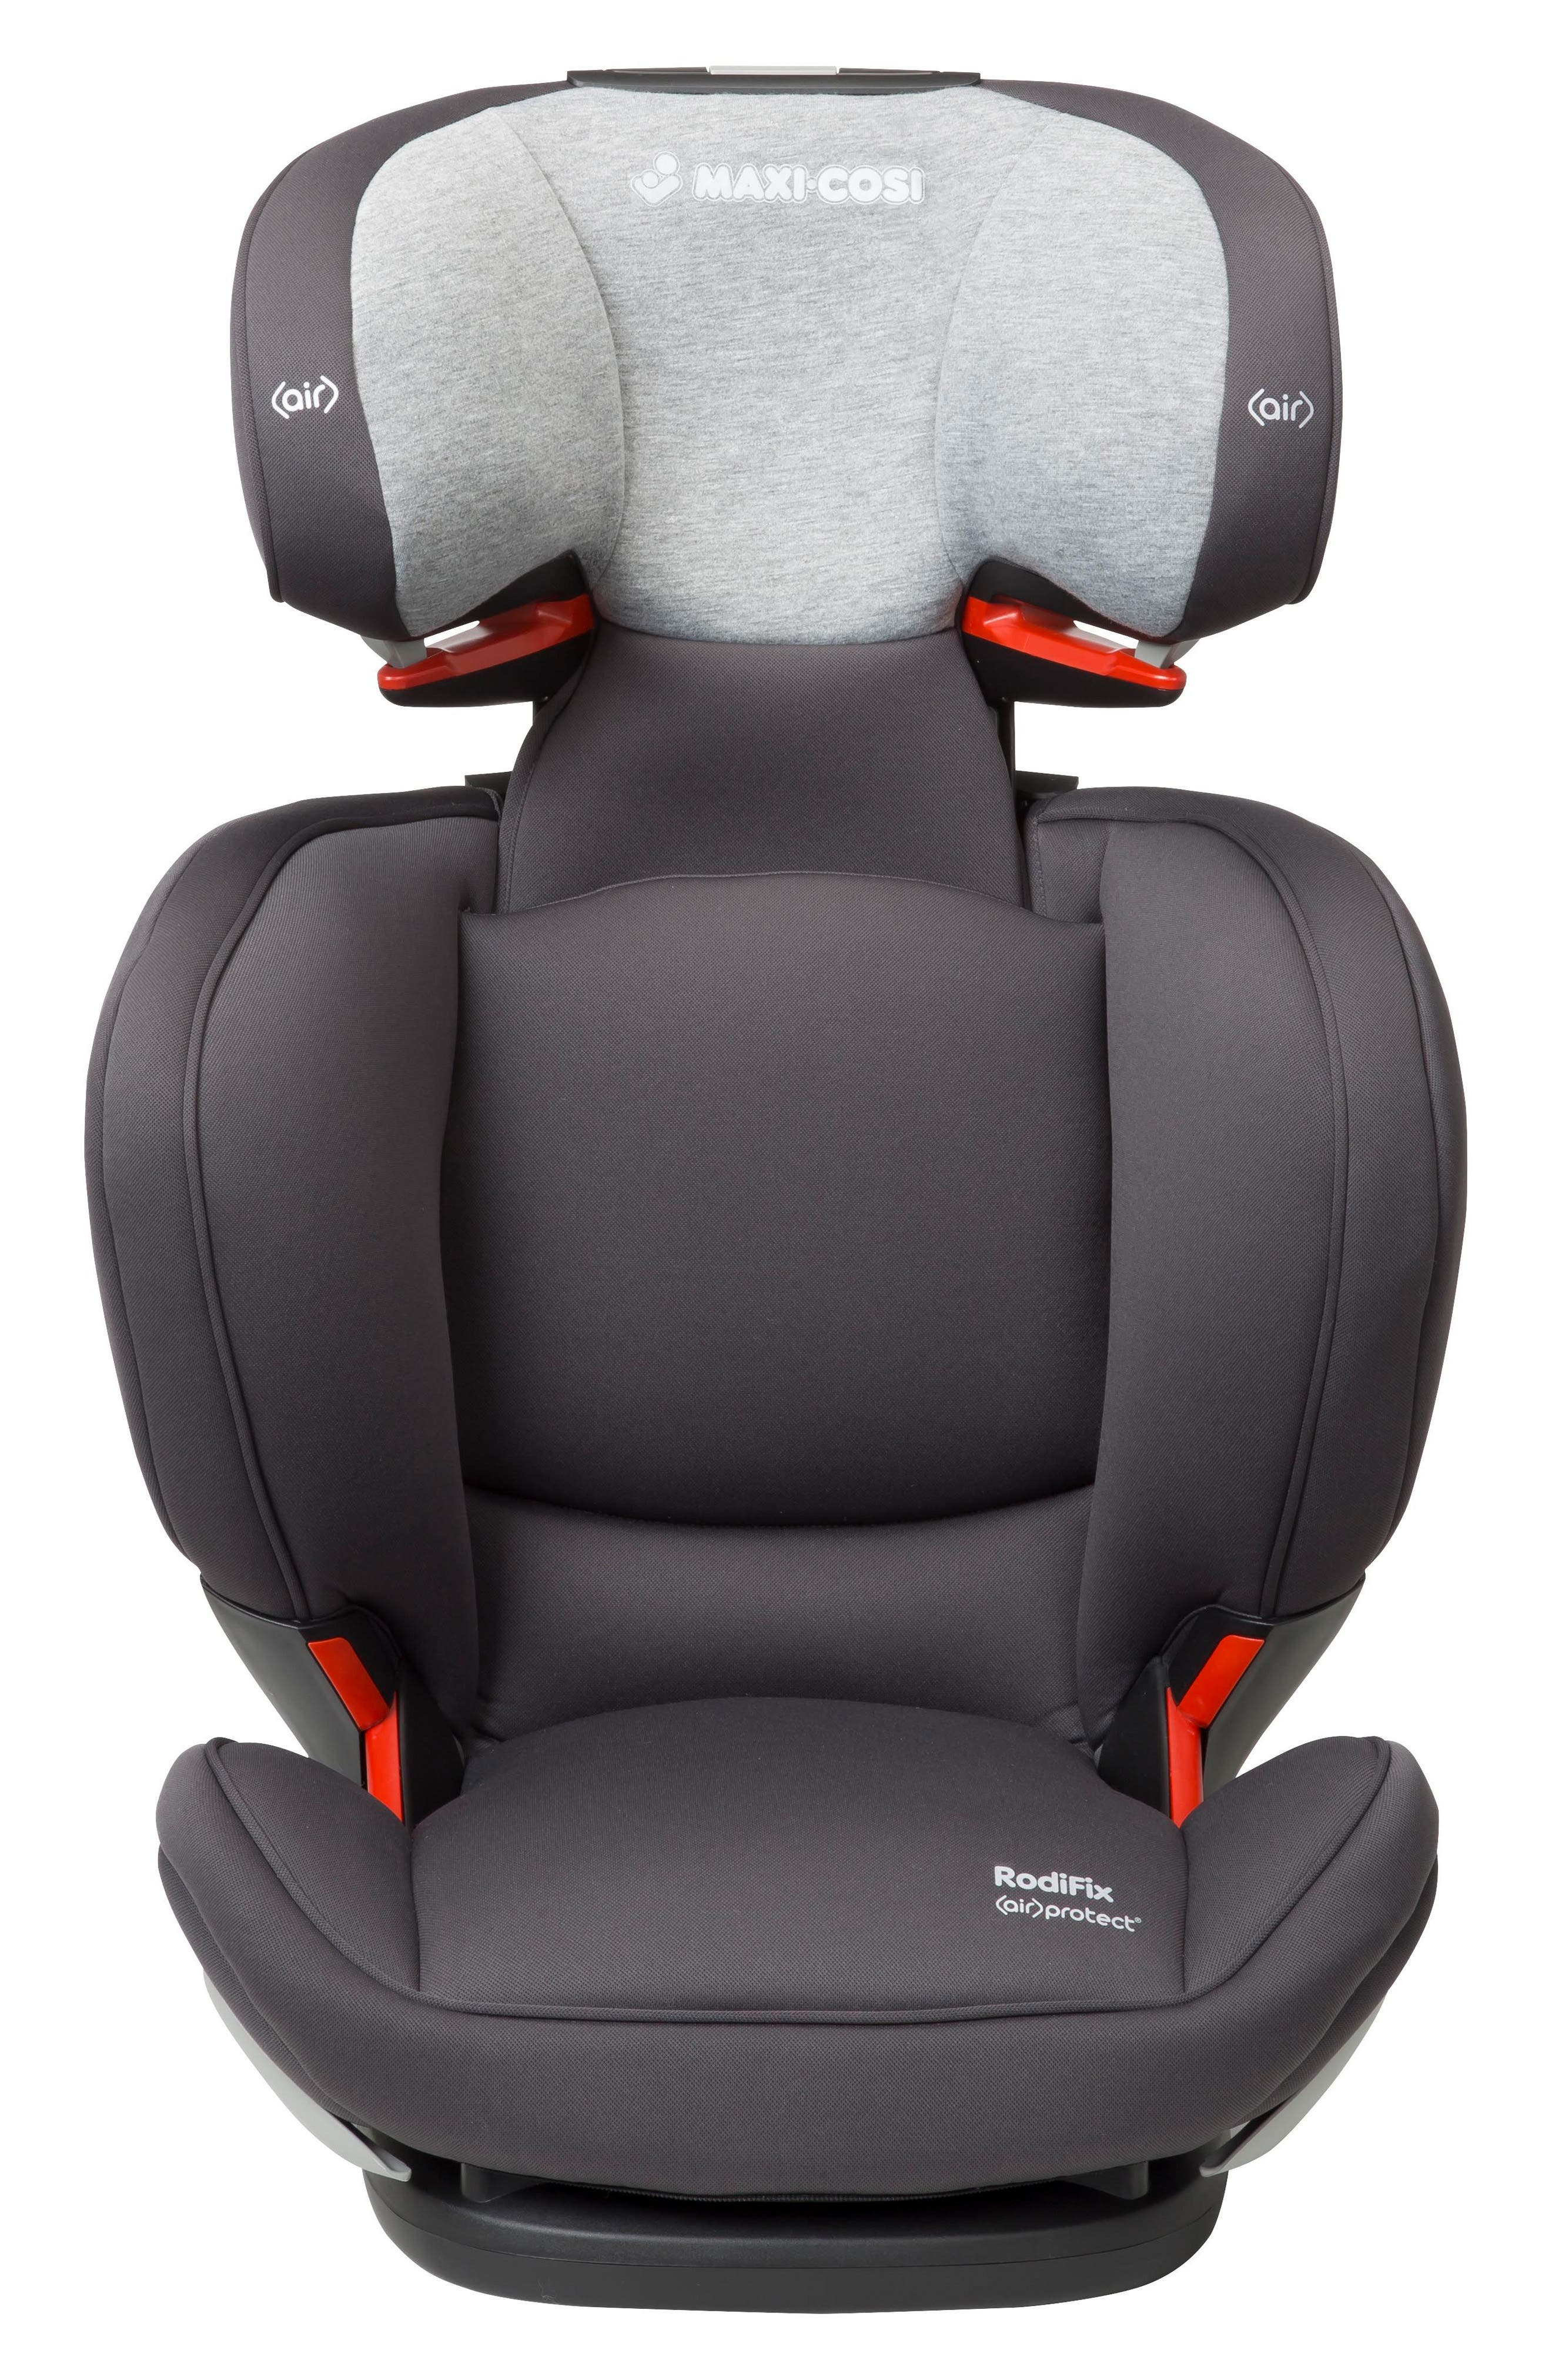 RodiFix Booster Car Seat,                             Alternate thumbnail 4, color,